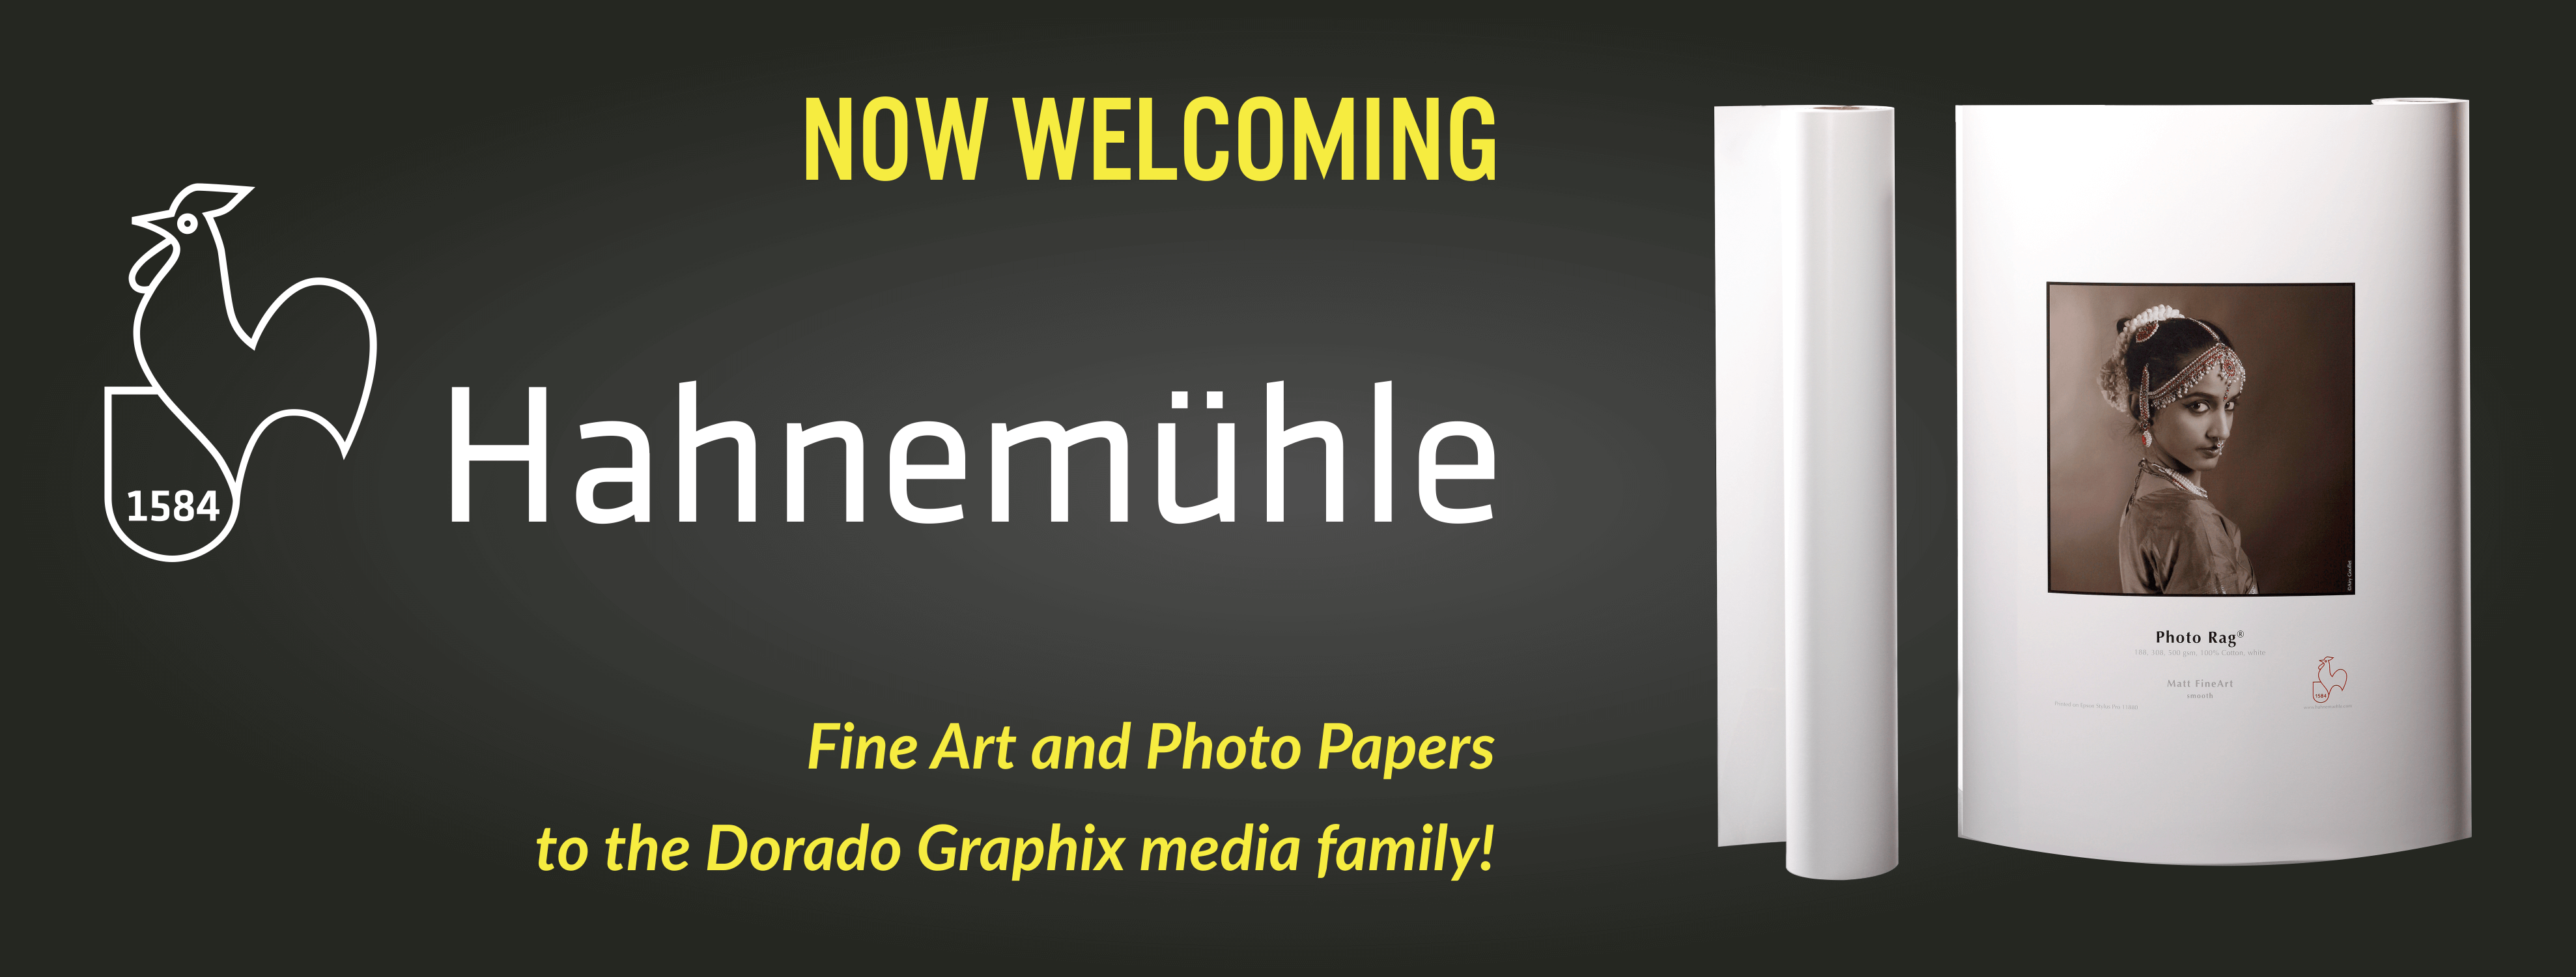 Now welcoming Hahnemühle to the Dorado Graphix media family!